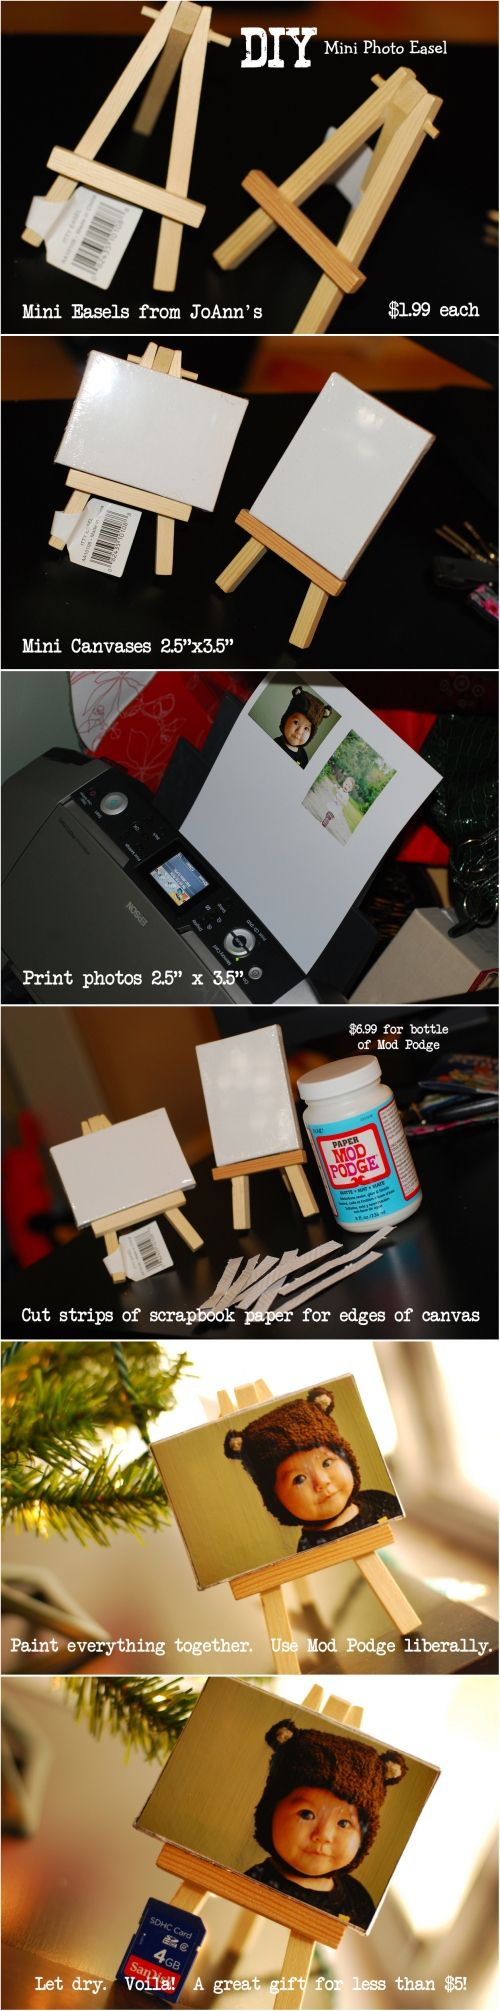 17 best images about mini canvas ideas on pinterest for Things to do with mini canvases